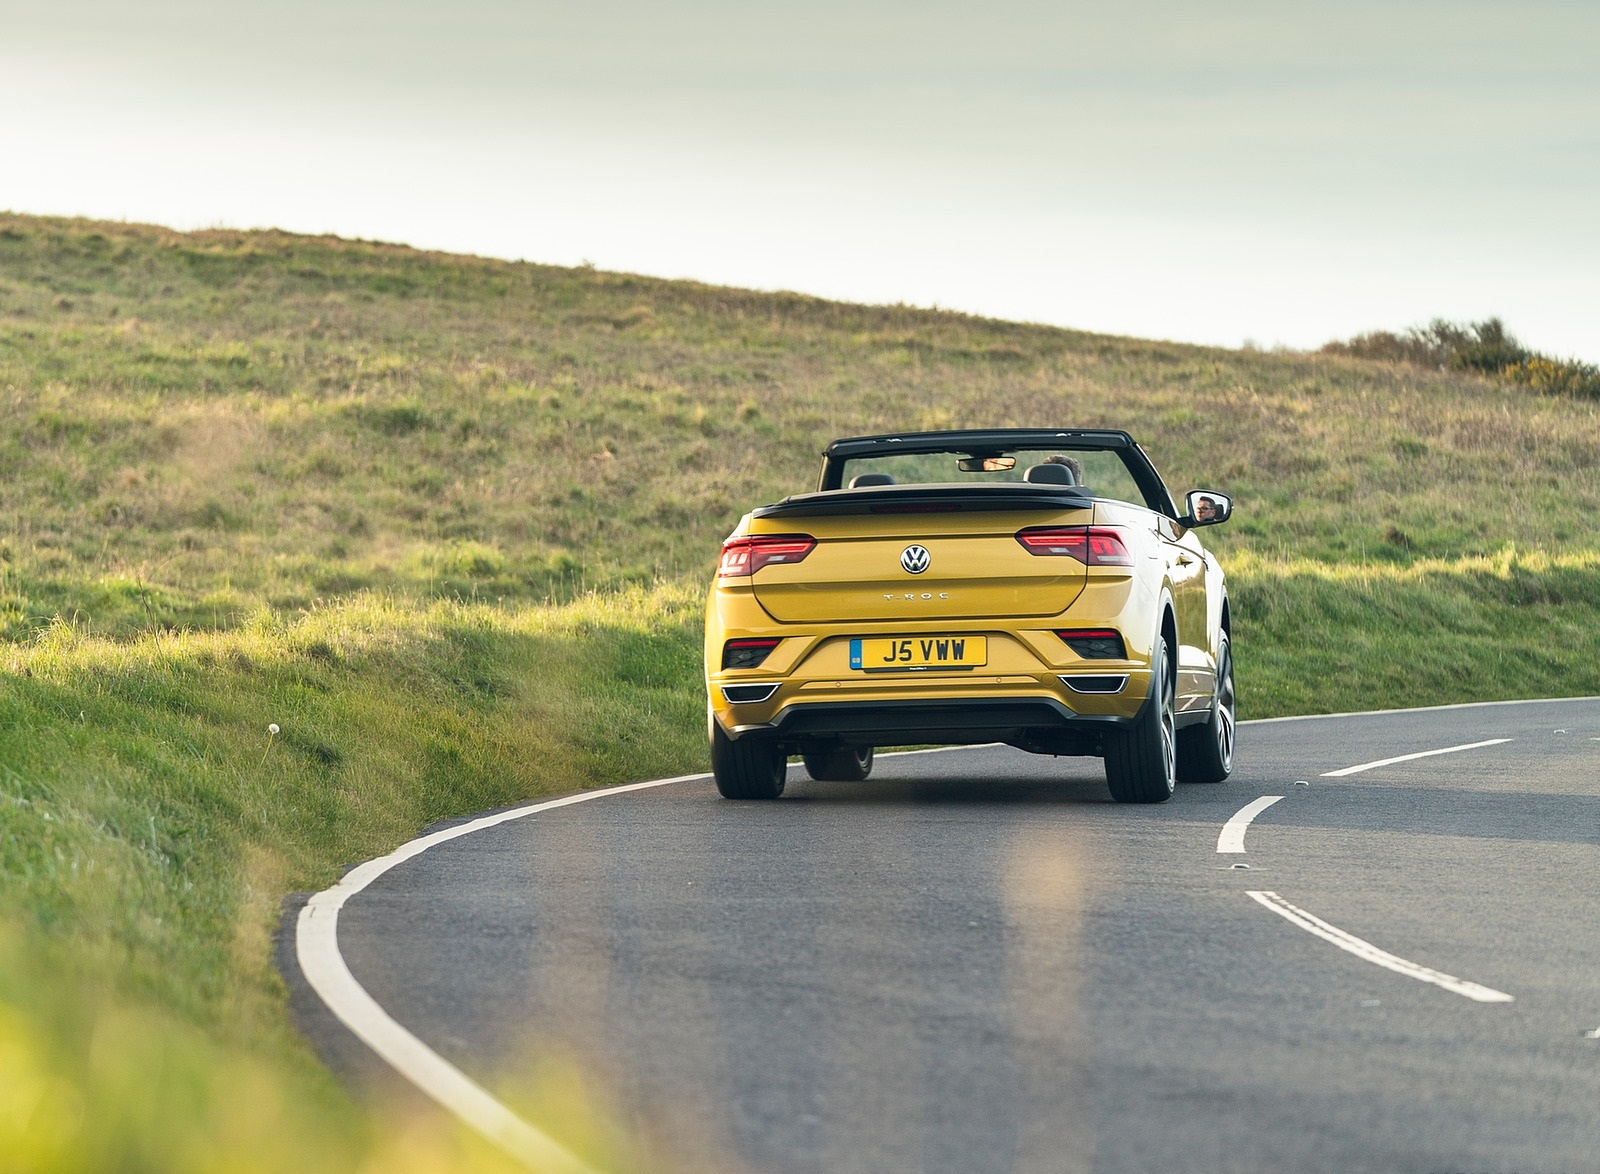 2020 Volkswagen T-Roc R-Line Cabriolet (UK-Spec) Rear Wallpapers (9)